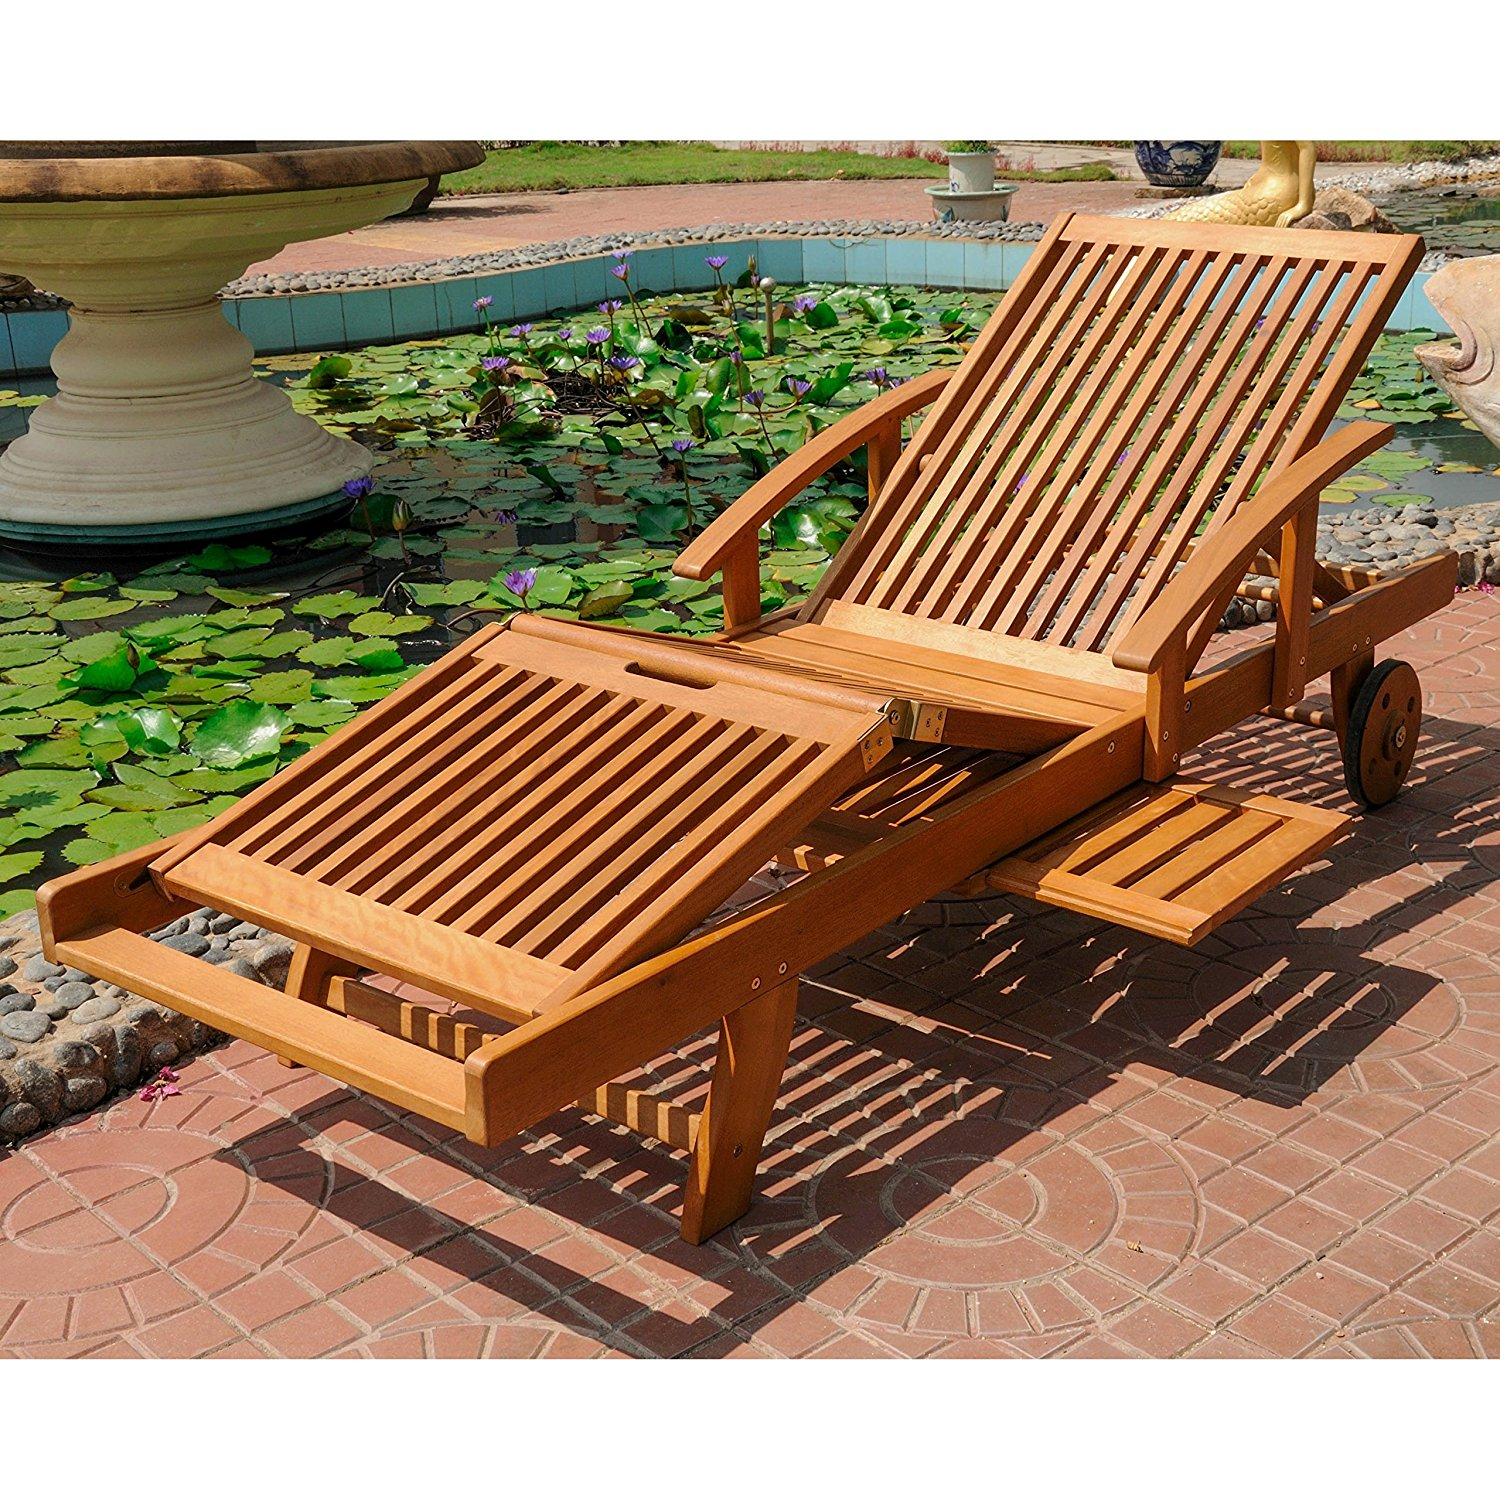 Wooden Multi-Position Outdoor Patio Chaise Lounge, Solid Wood Construction, All-Weather and Water Resistant, Brown Color + Expert Guide